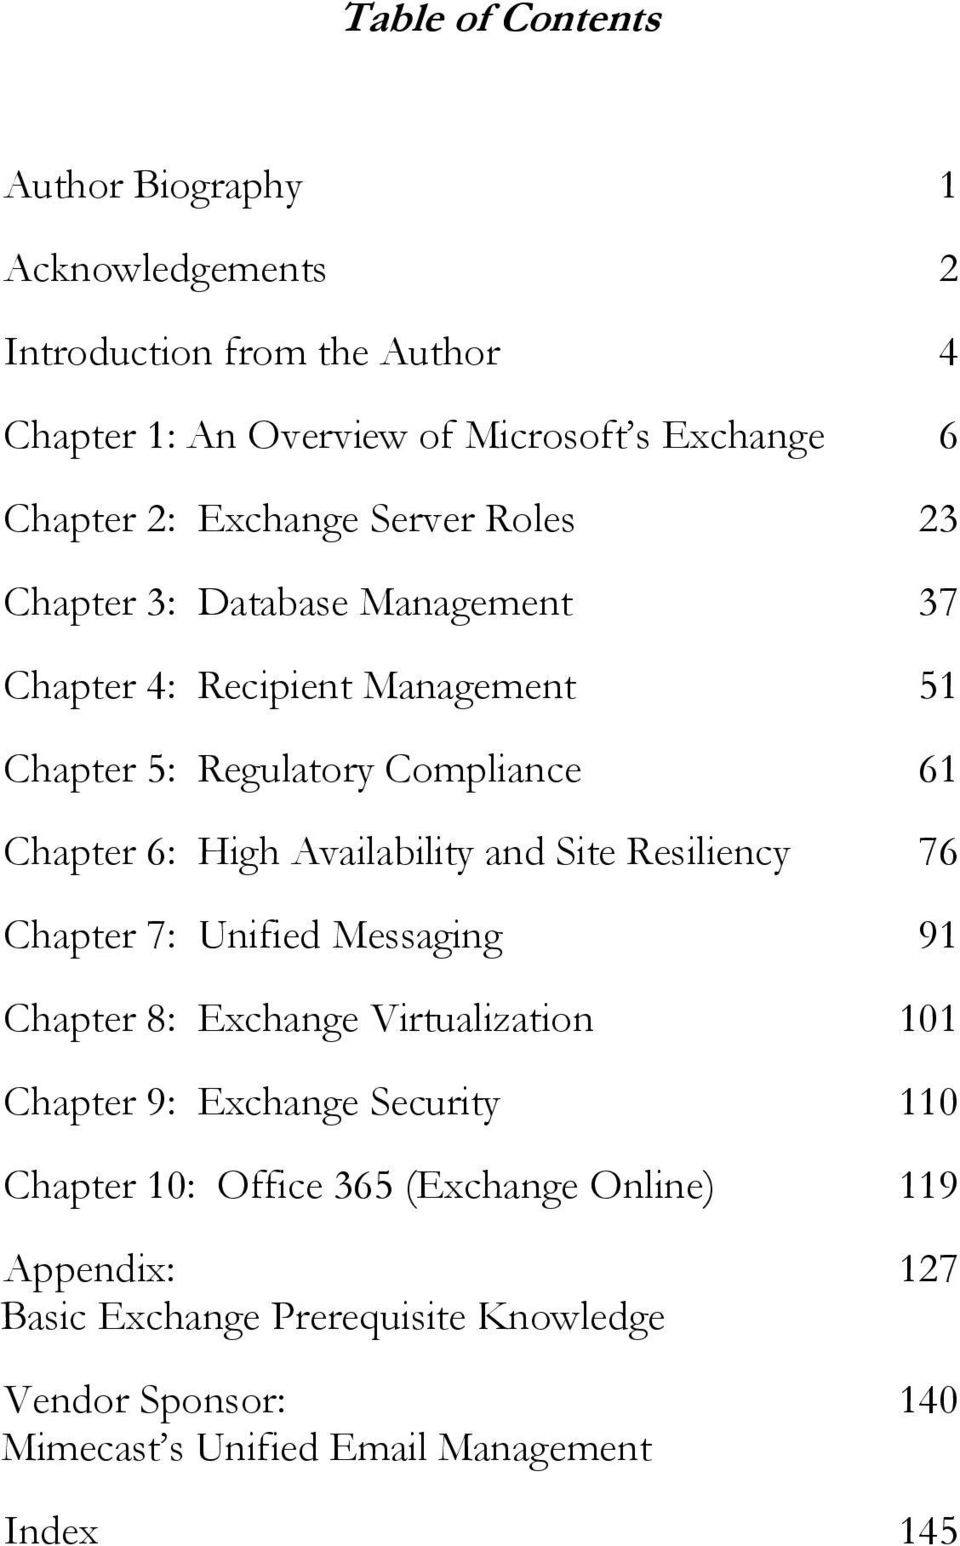 Availability and Site Resiliency 76 Chapter 7: Unified Messaging 91 Chapter 8: Exchange Virtualization 101 Chapter 9: Exchange Security 110 Chapter